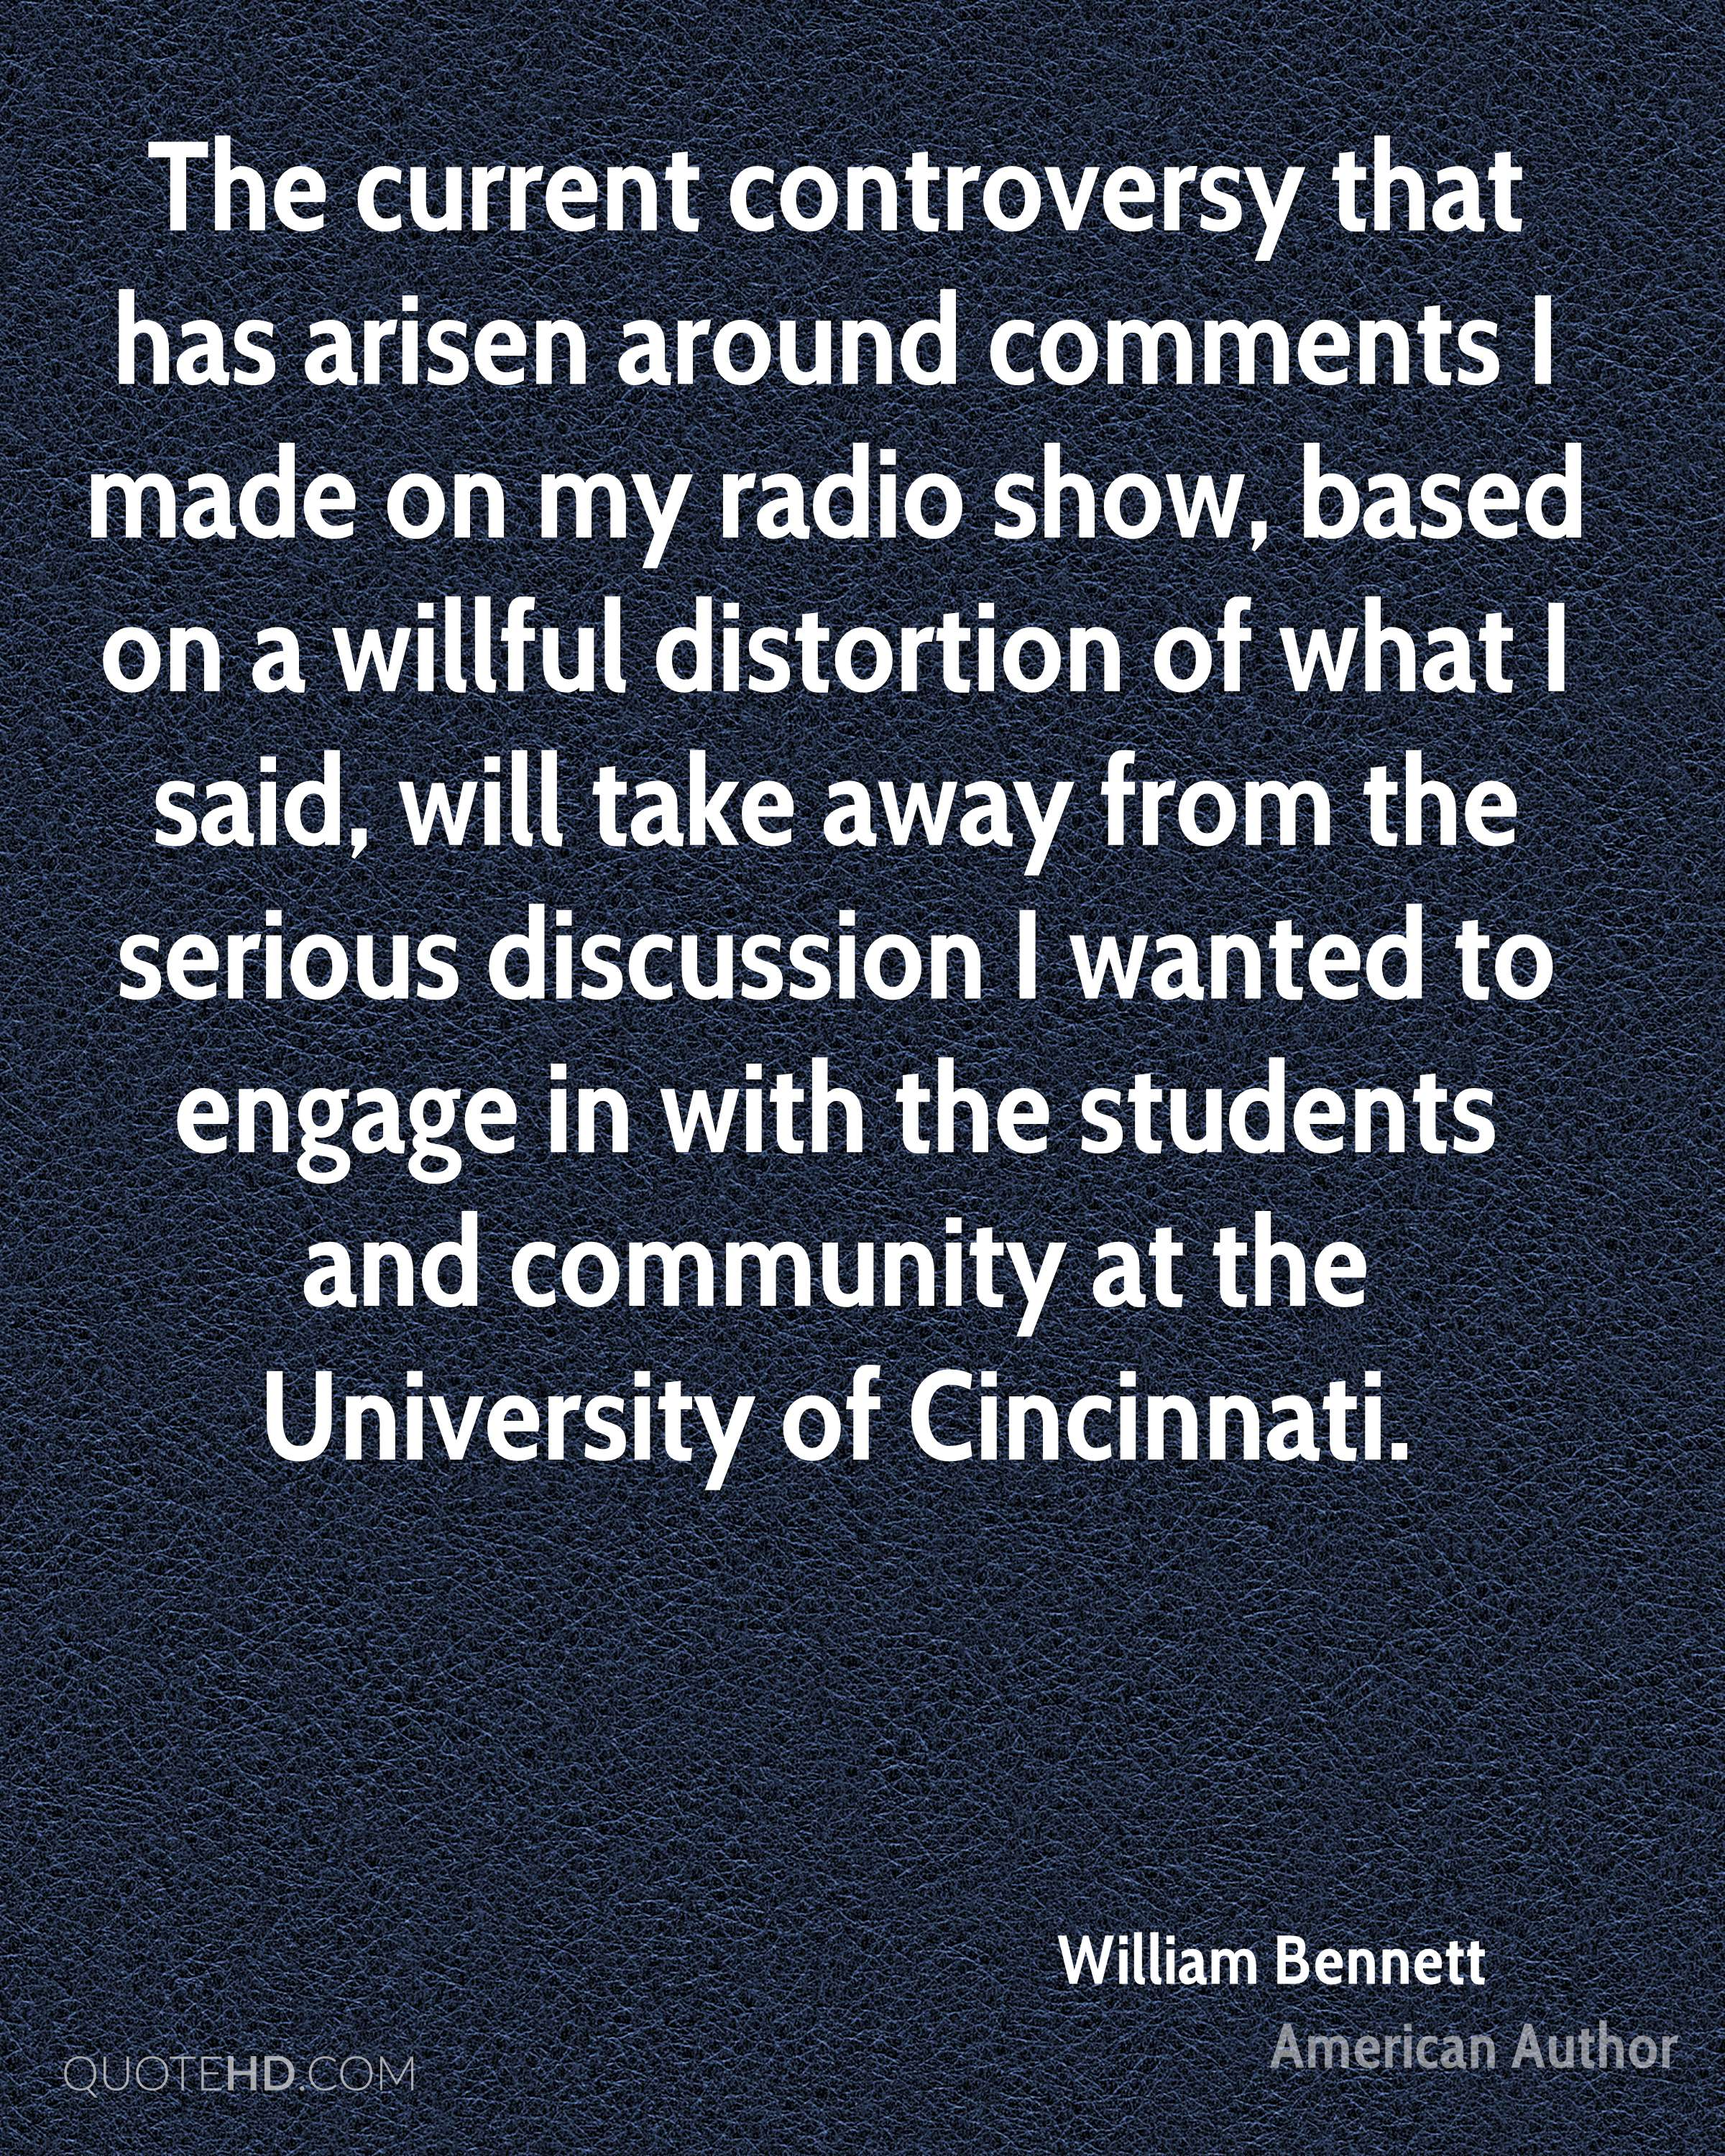 The current controversy that has arisen around comments I made on my radio show, based on a willful distortion of what I said, will take away from the serious discussion I wanted to engage in with the students and community at the University of Cincinnati.